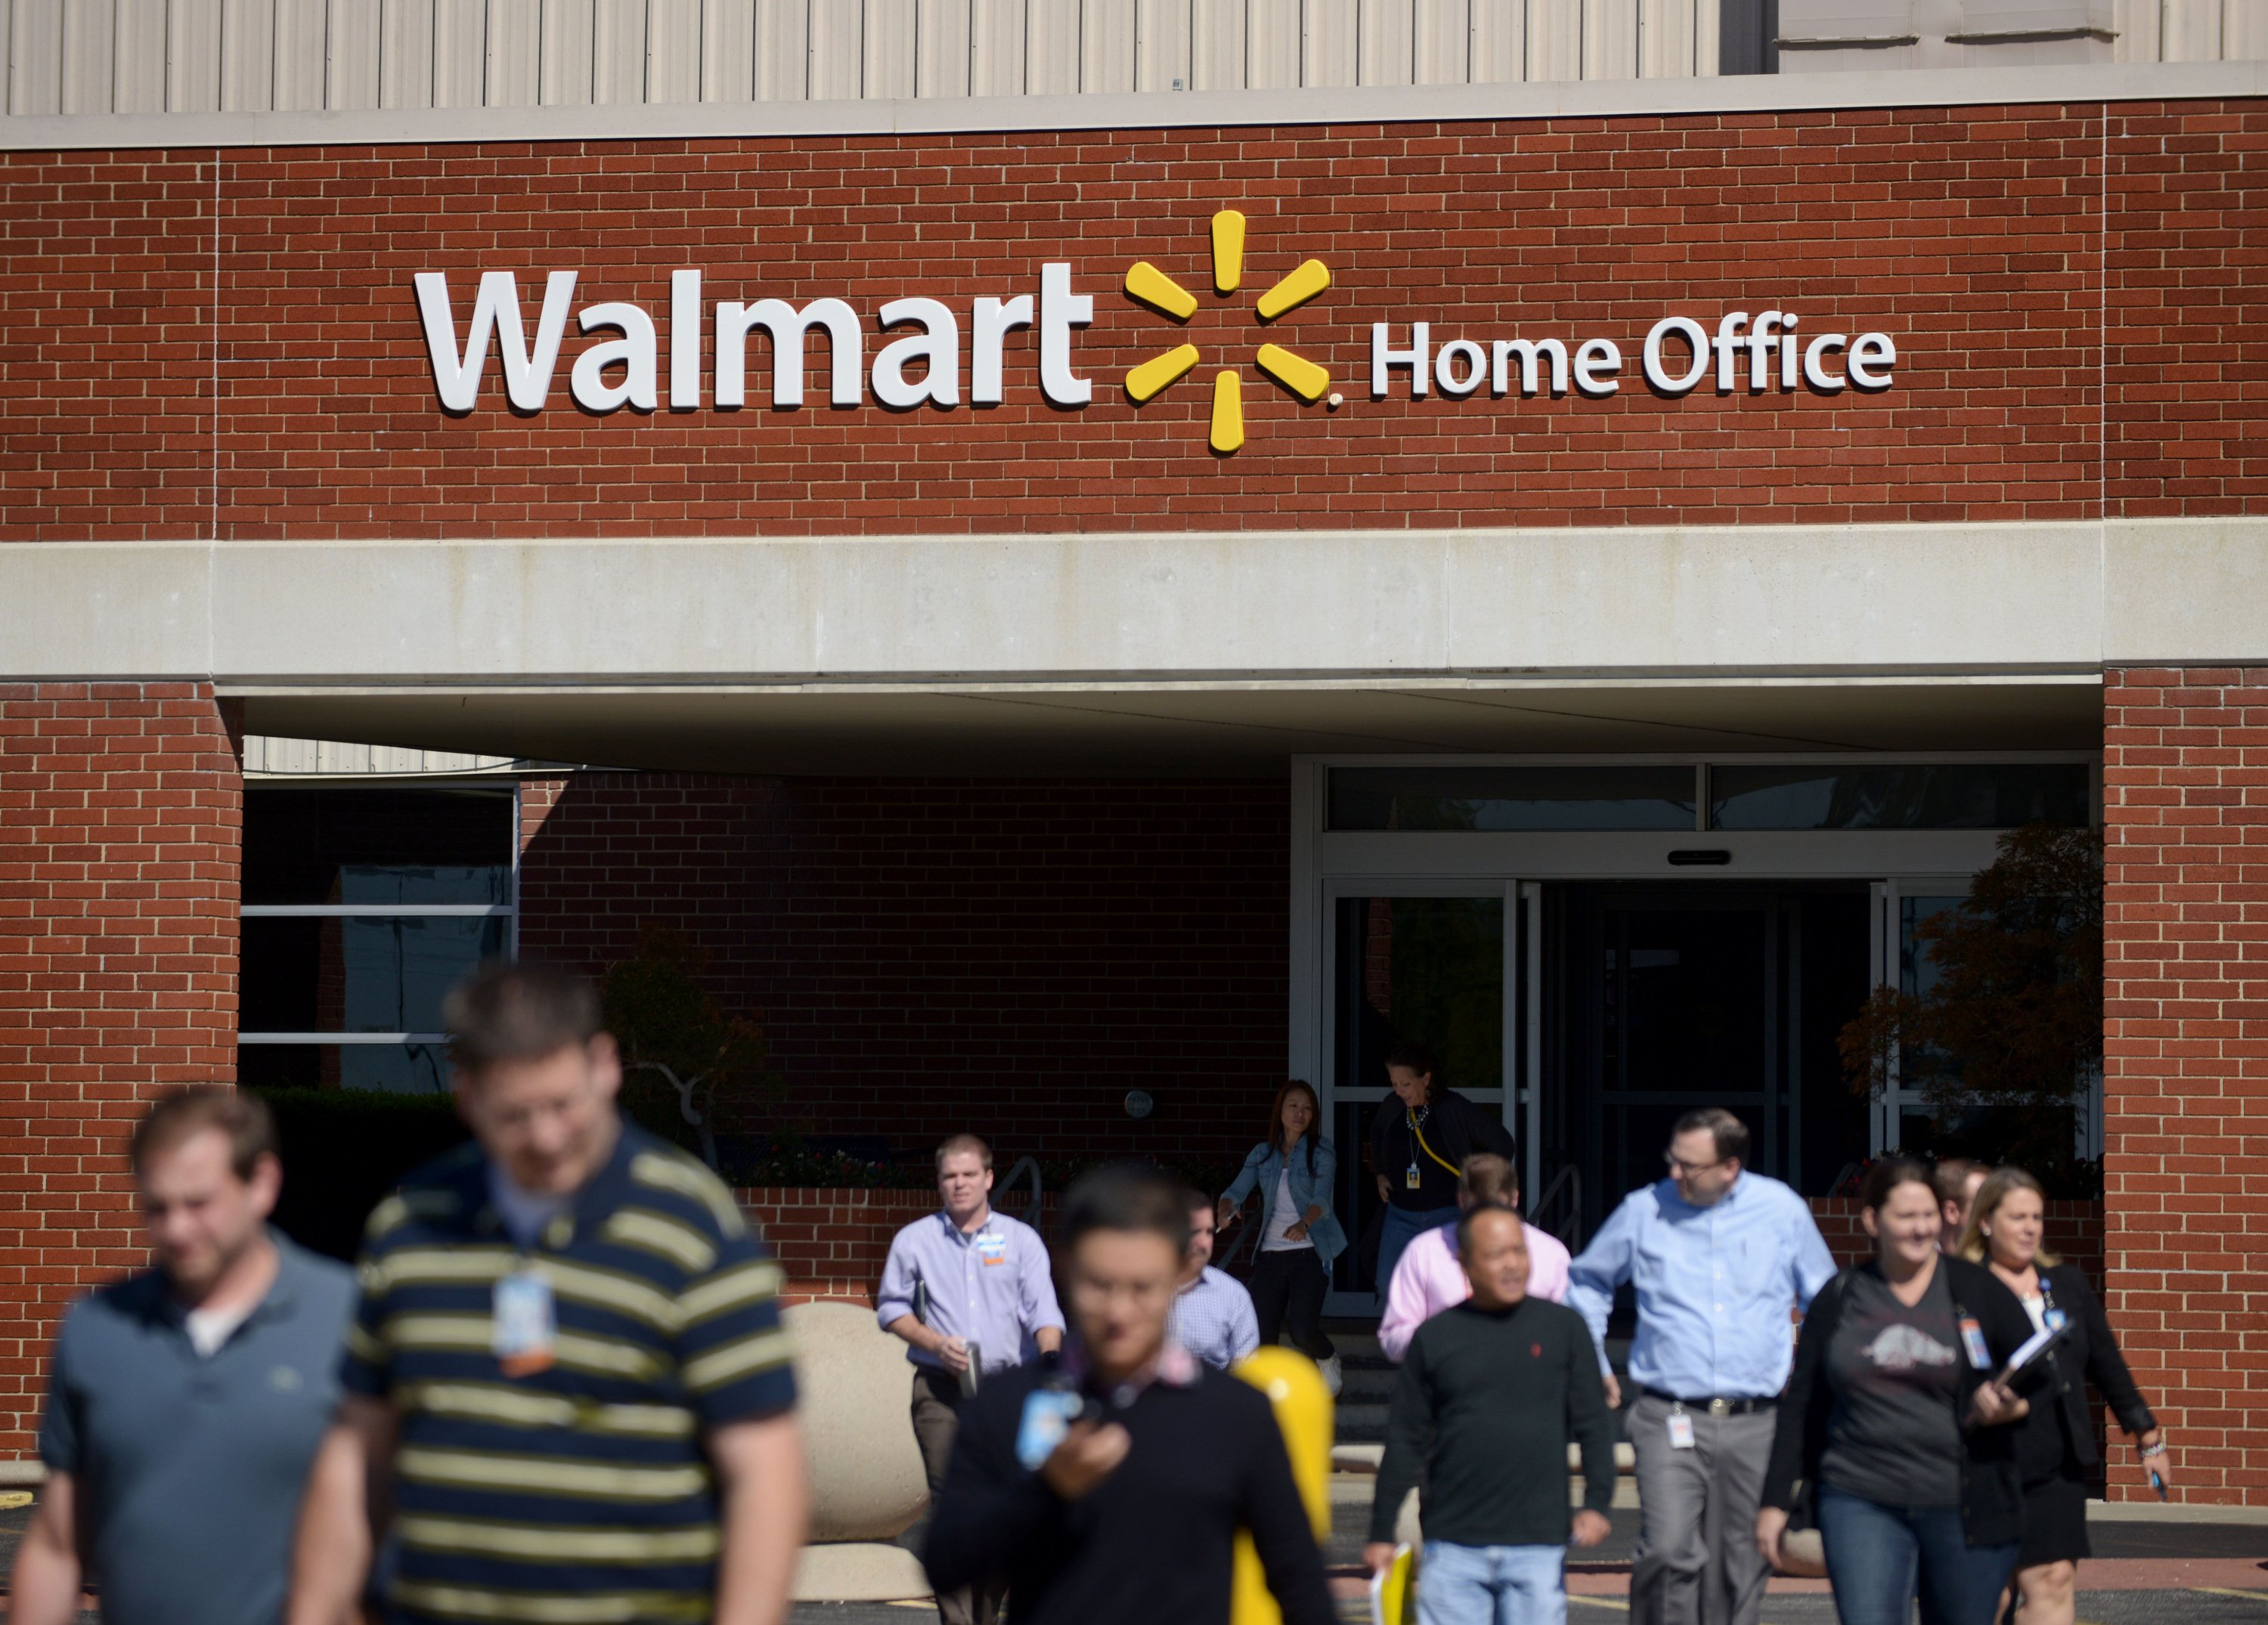 450 laid off at Wal-Mart headquarters